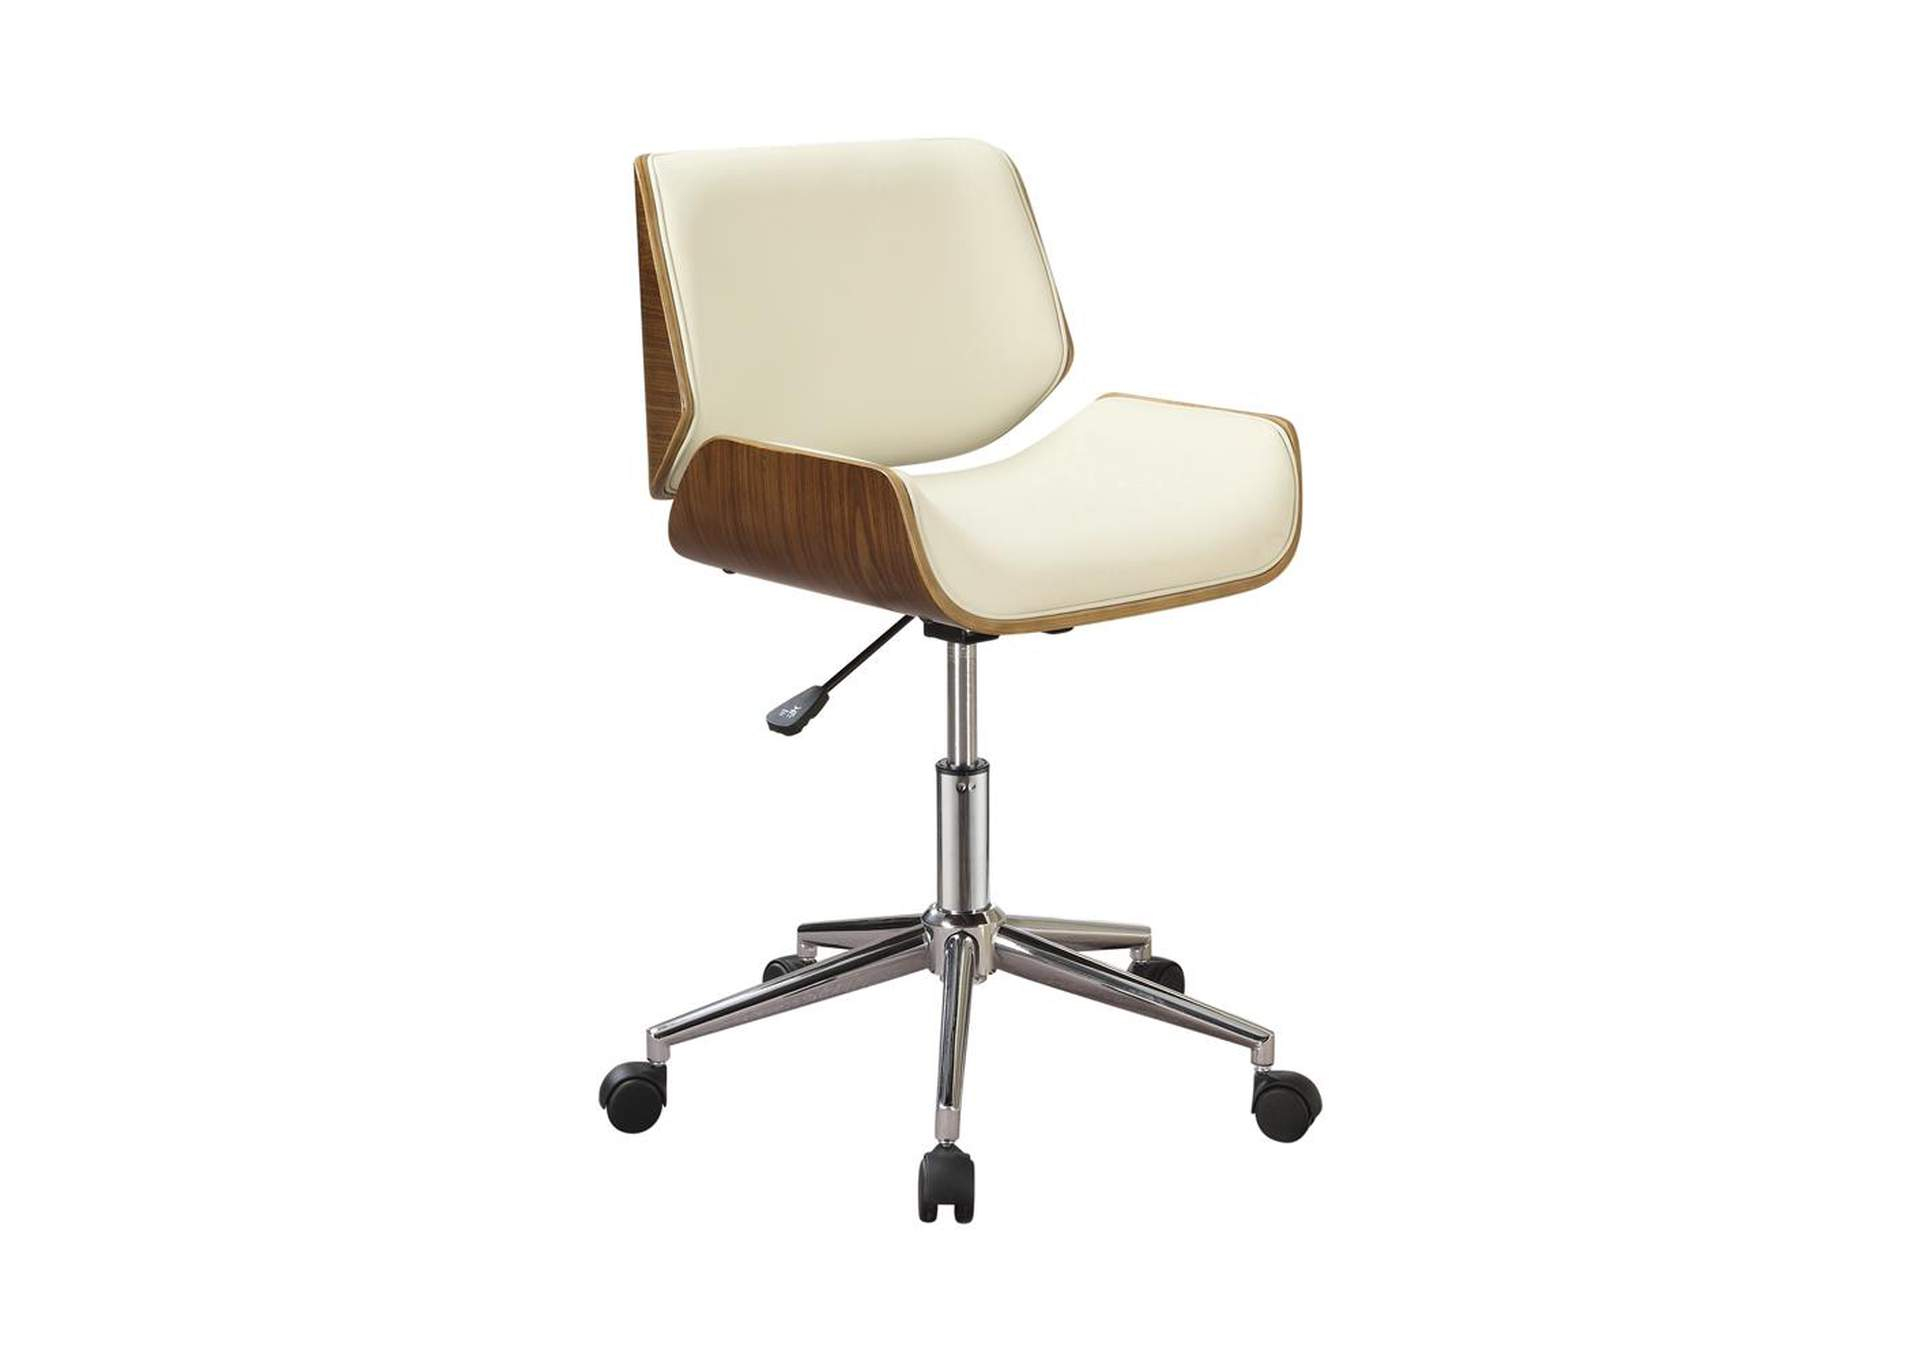 Walnut Modern Ecru Office Chair,Coaster Furniture